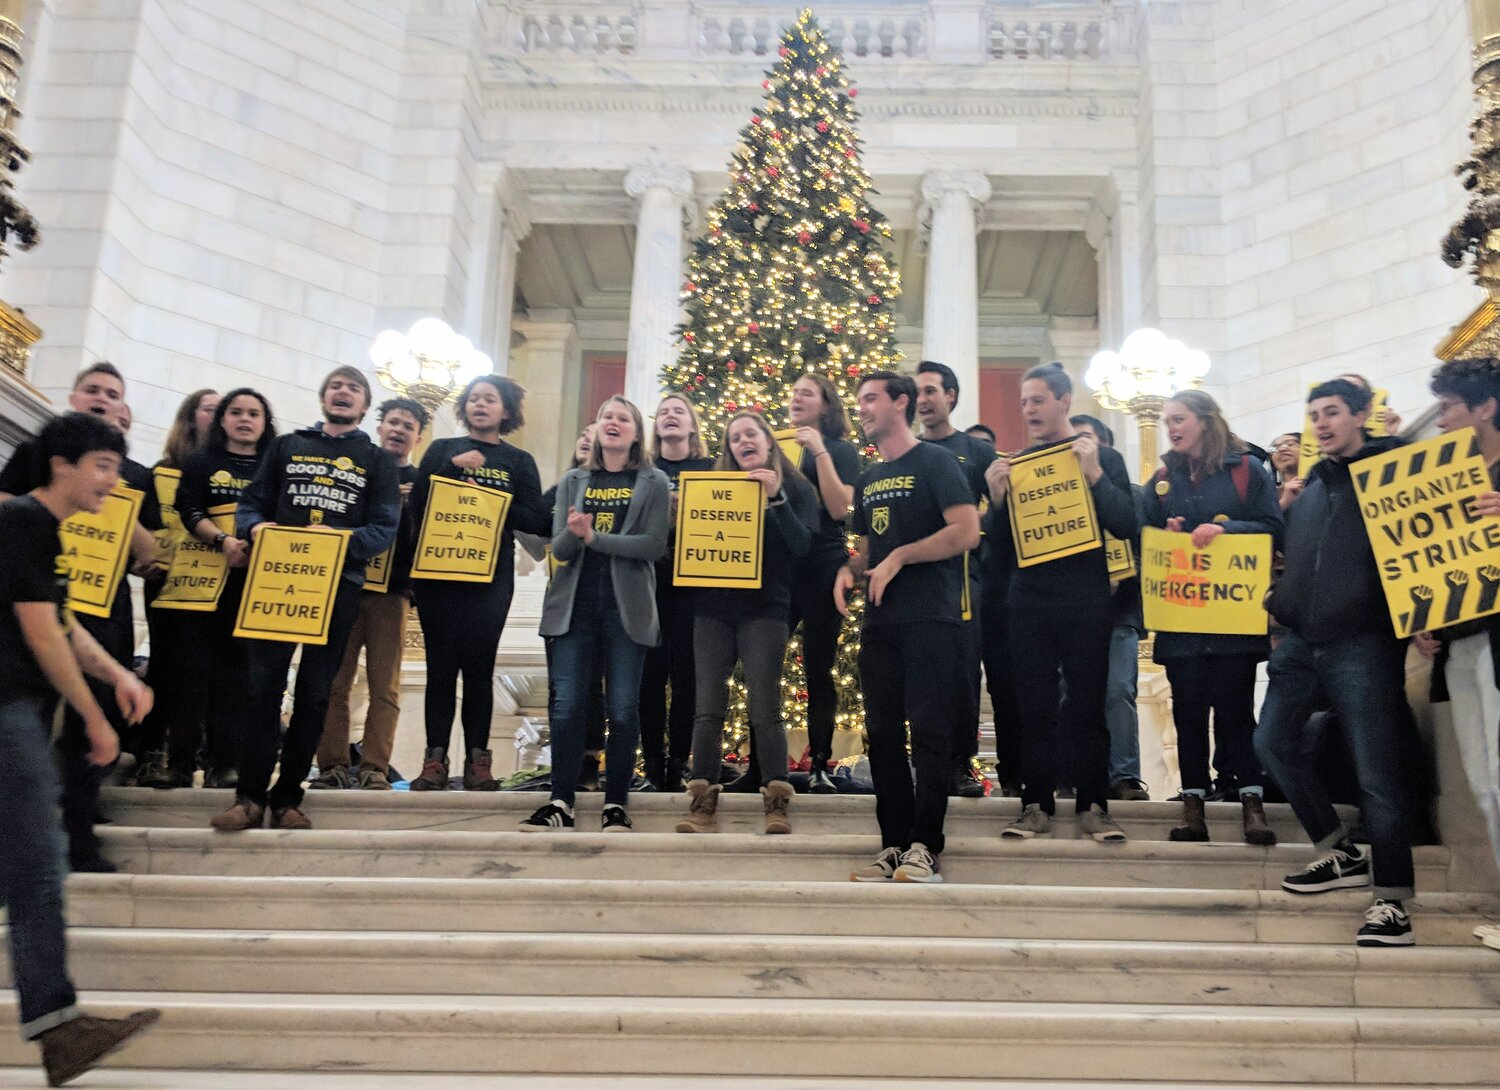 Sunrise Movement activists occupied the Statehouse rotunda prior to their arrests.